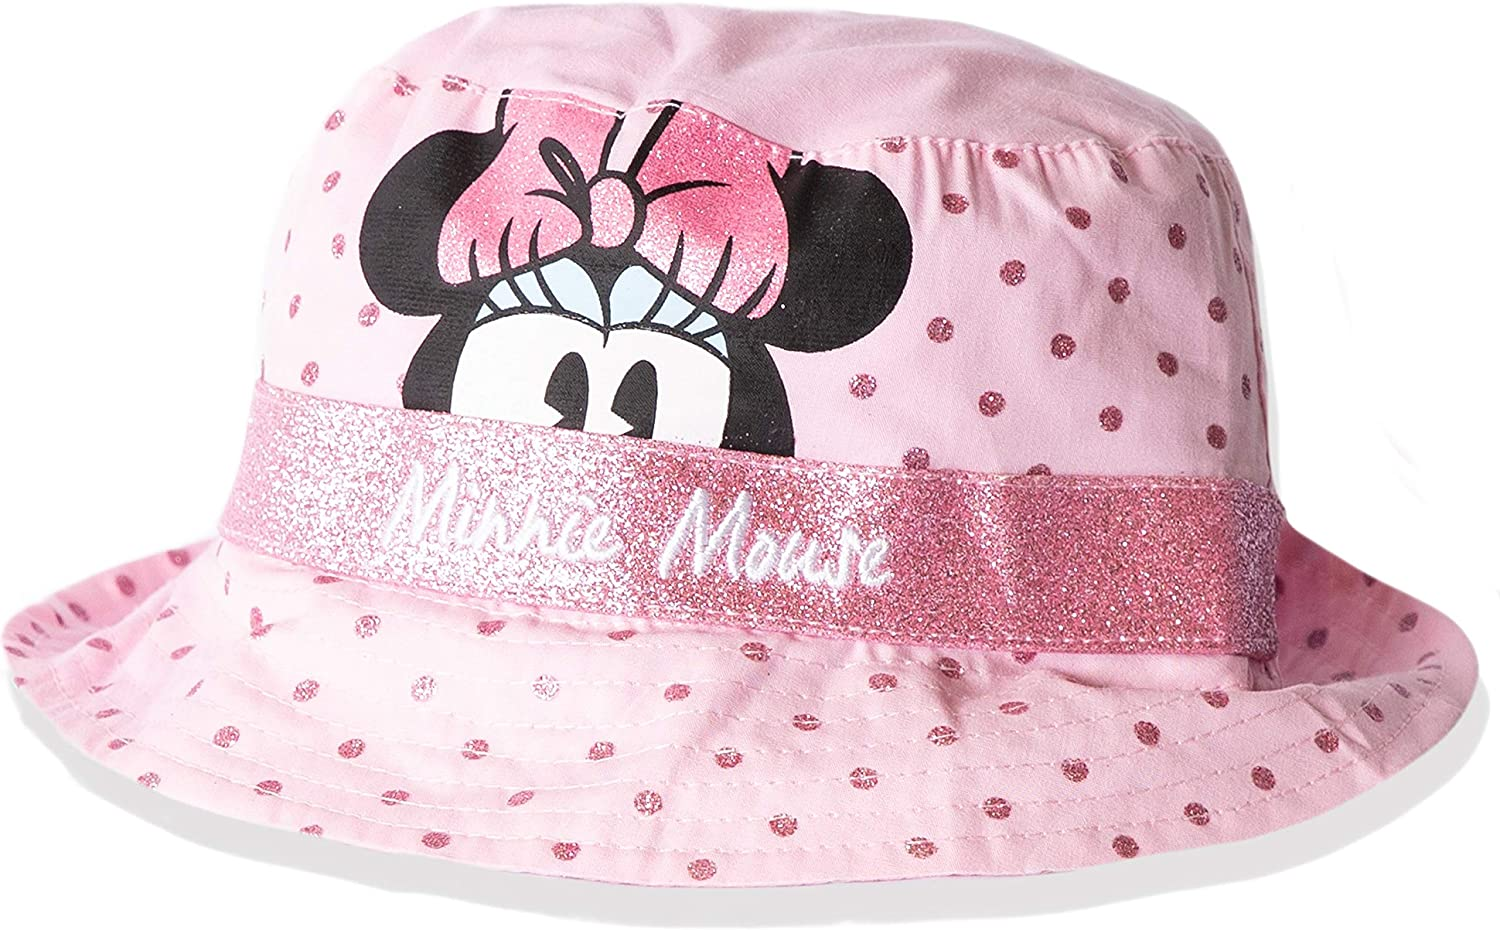 Disney Minnie Mouse Baby Girl Cotton Made Summer Bucket Cappelli da Sole con Nastro Glitery 0-2 anni